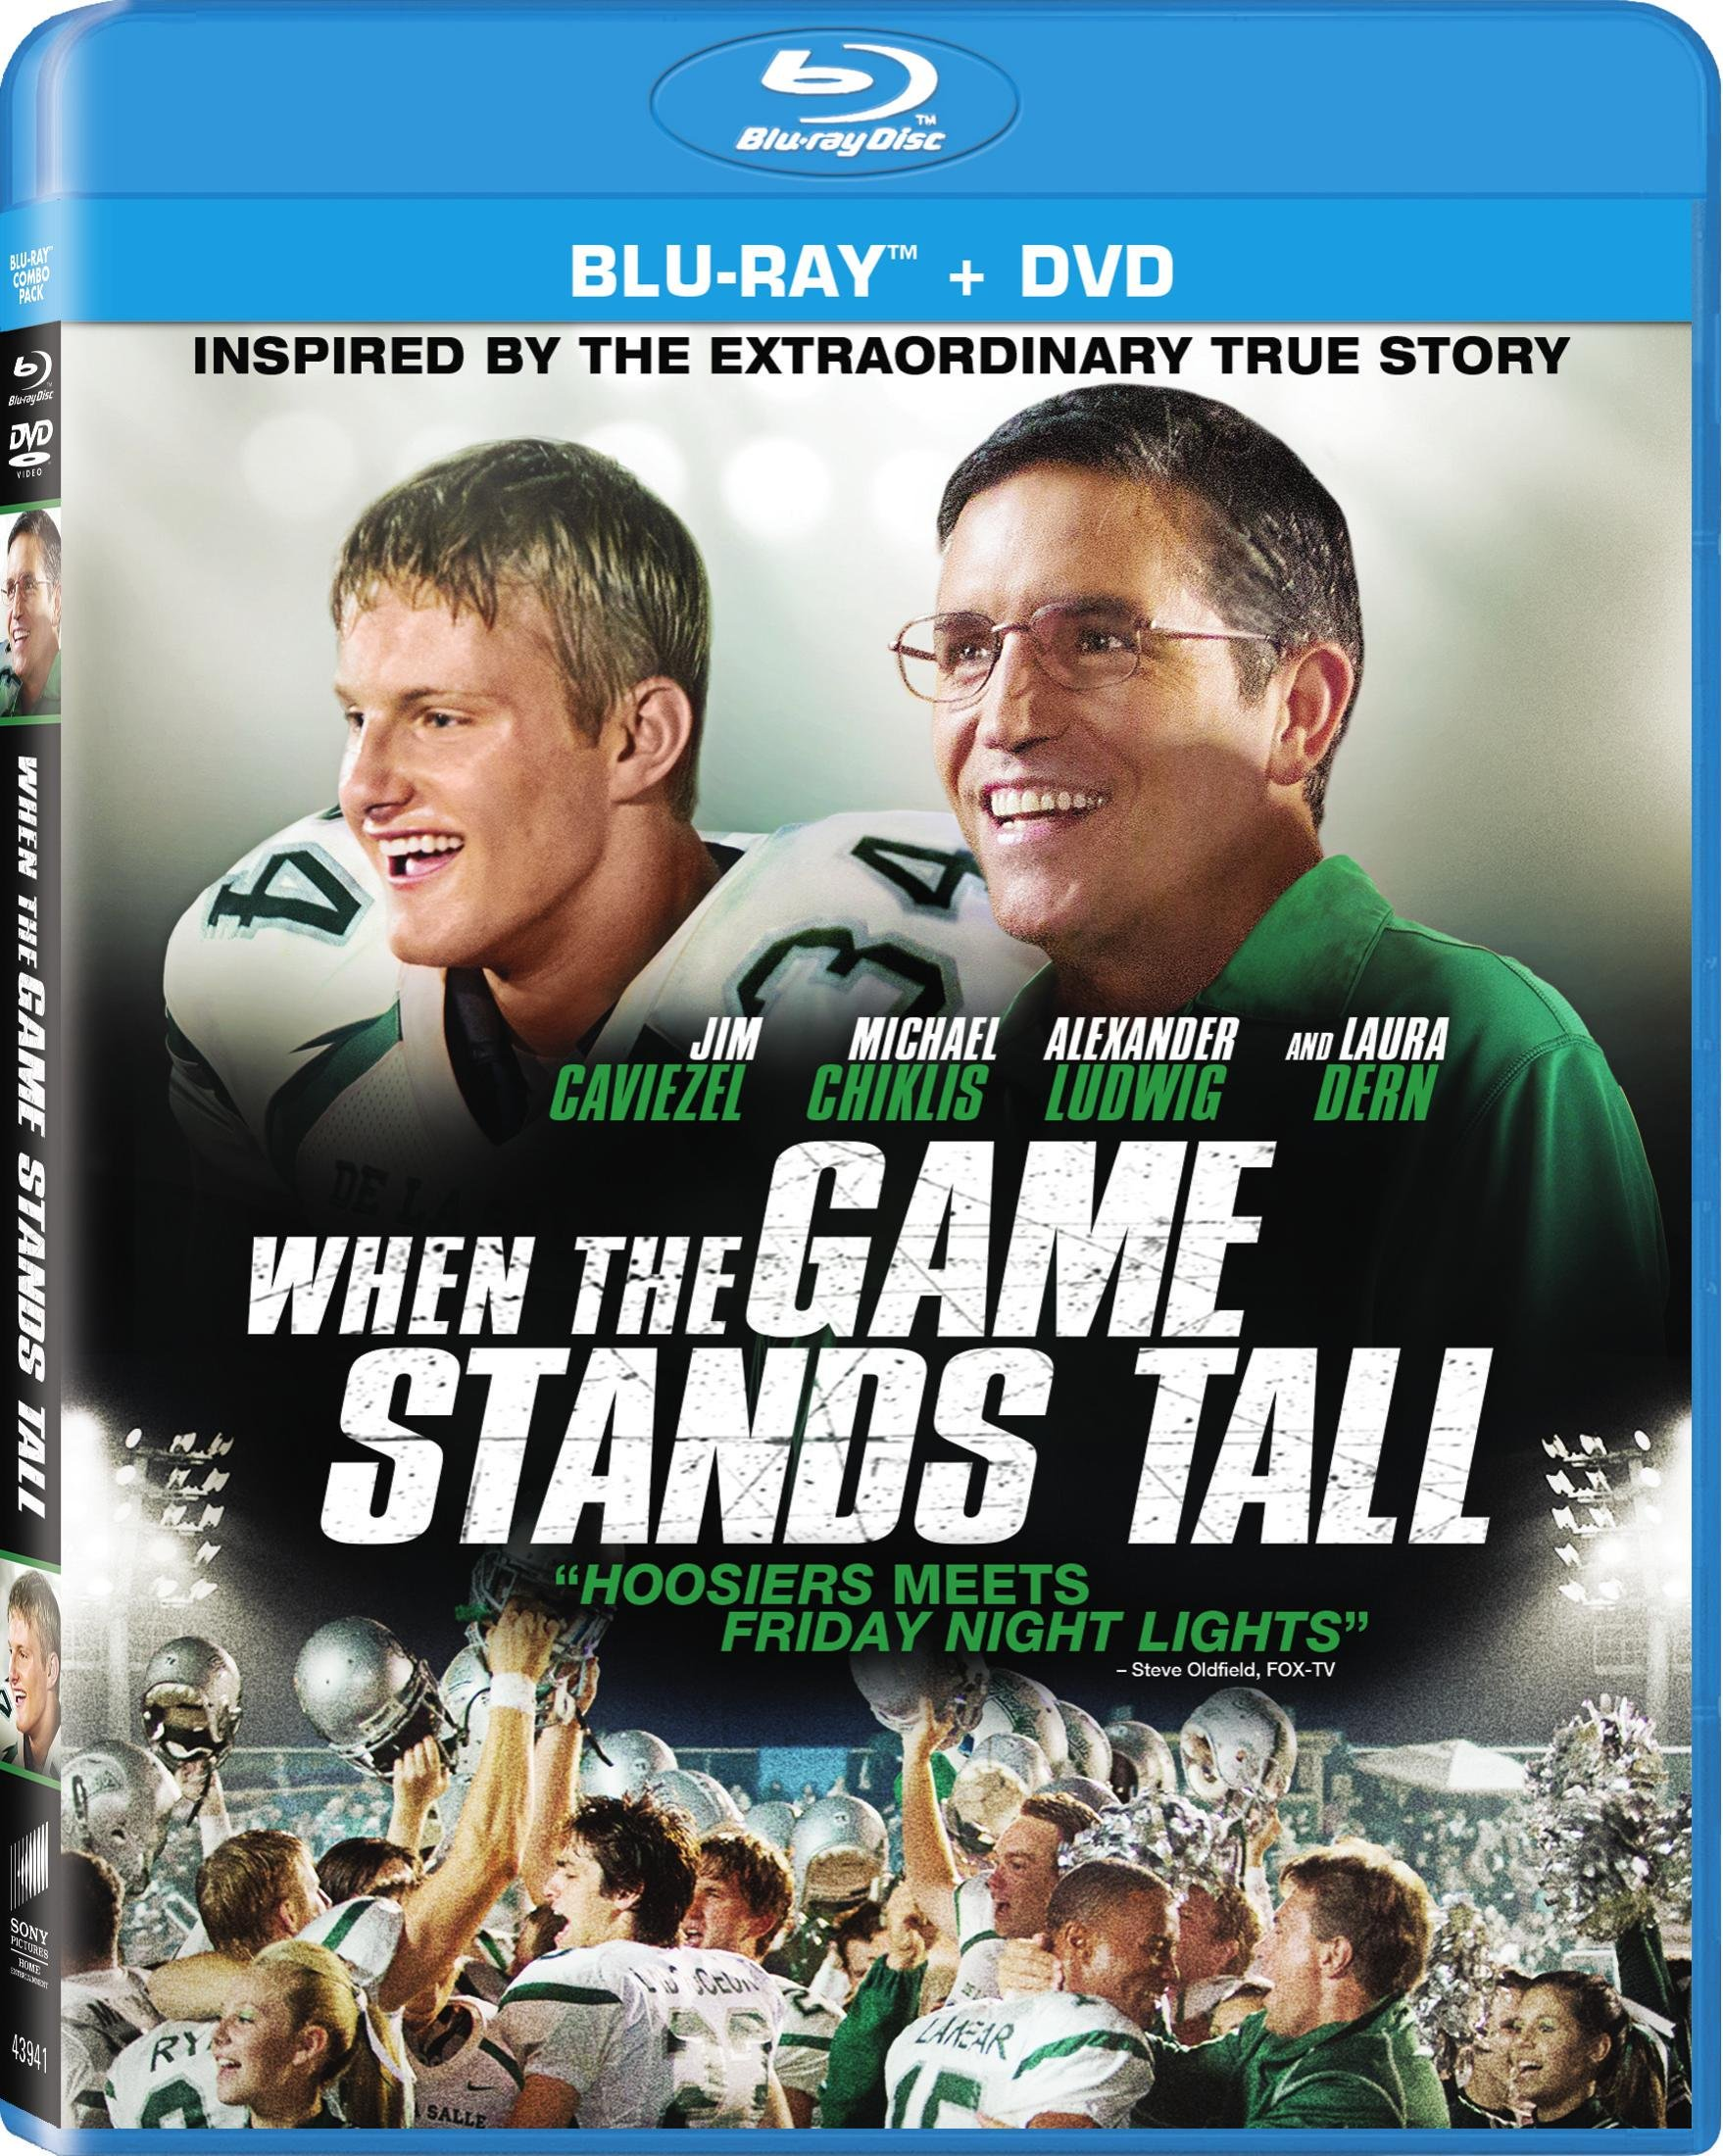 When The Game Stands Tall Blu-ray Review